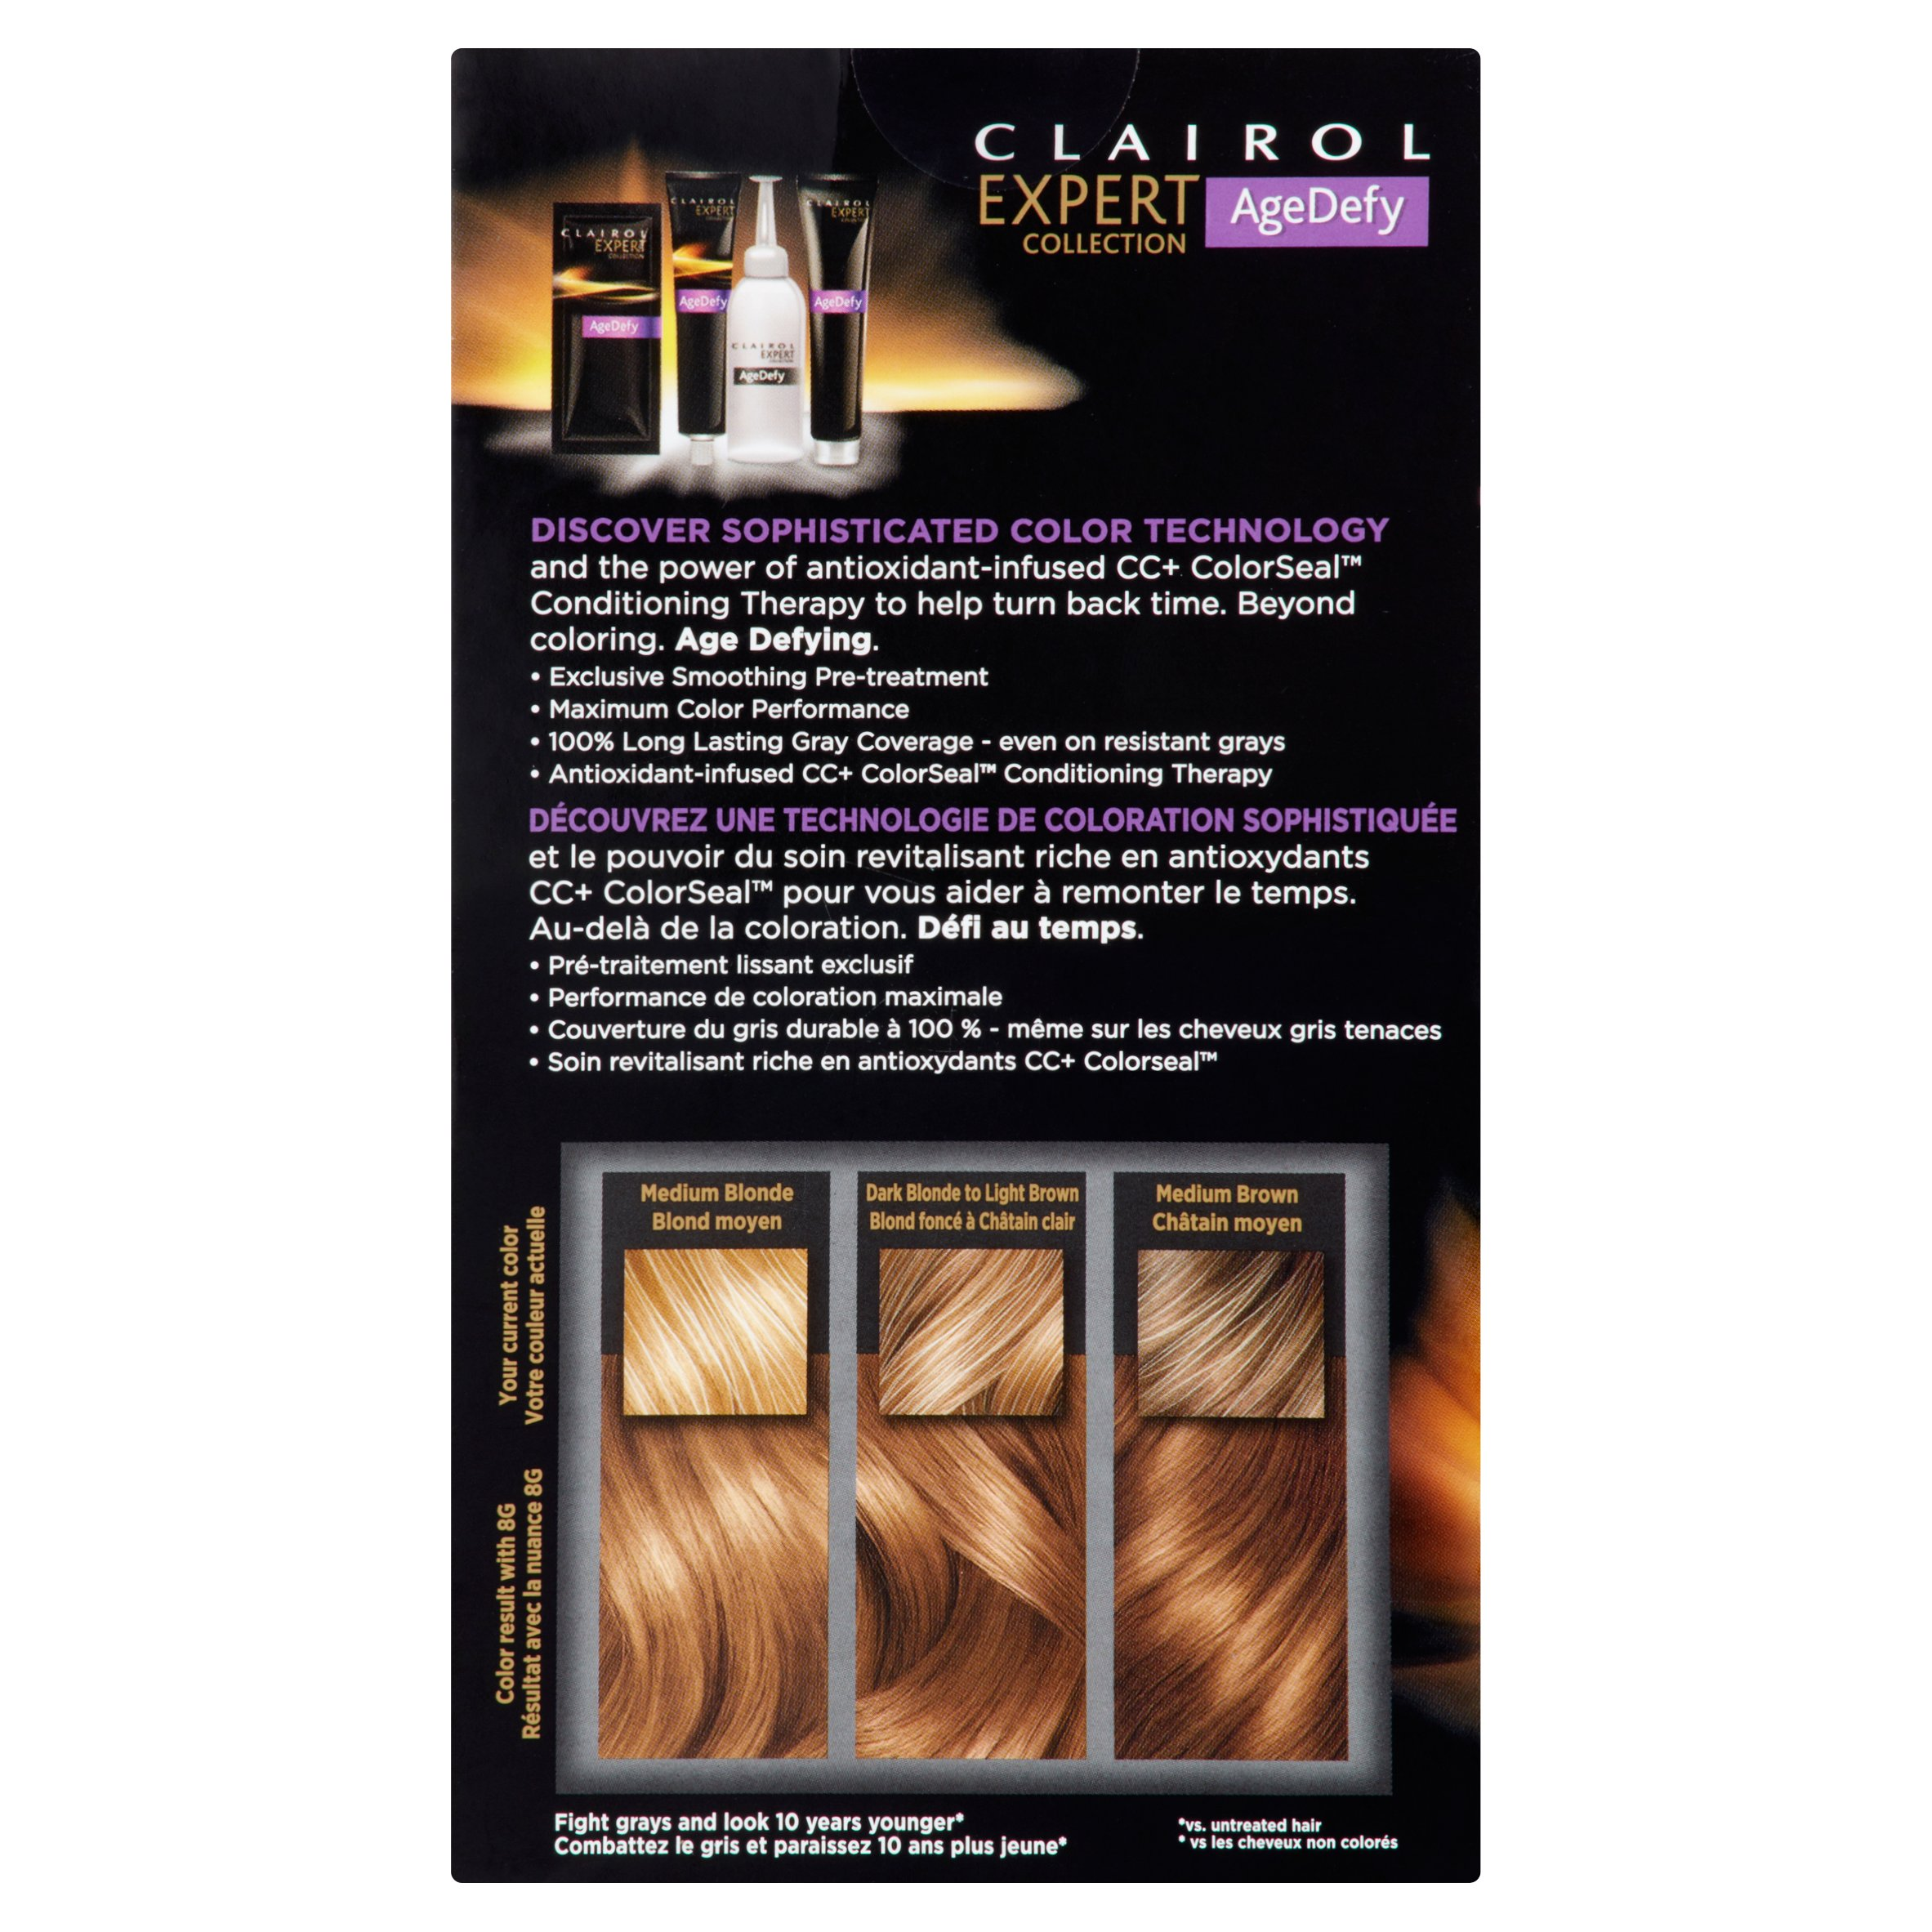 Clairol expert collection age defy hair color 5g medium golden clairol expert collection age defy hair color 5g medium golden brown walmart nvjuhfo Image collections